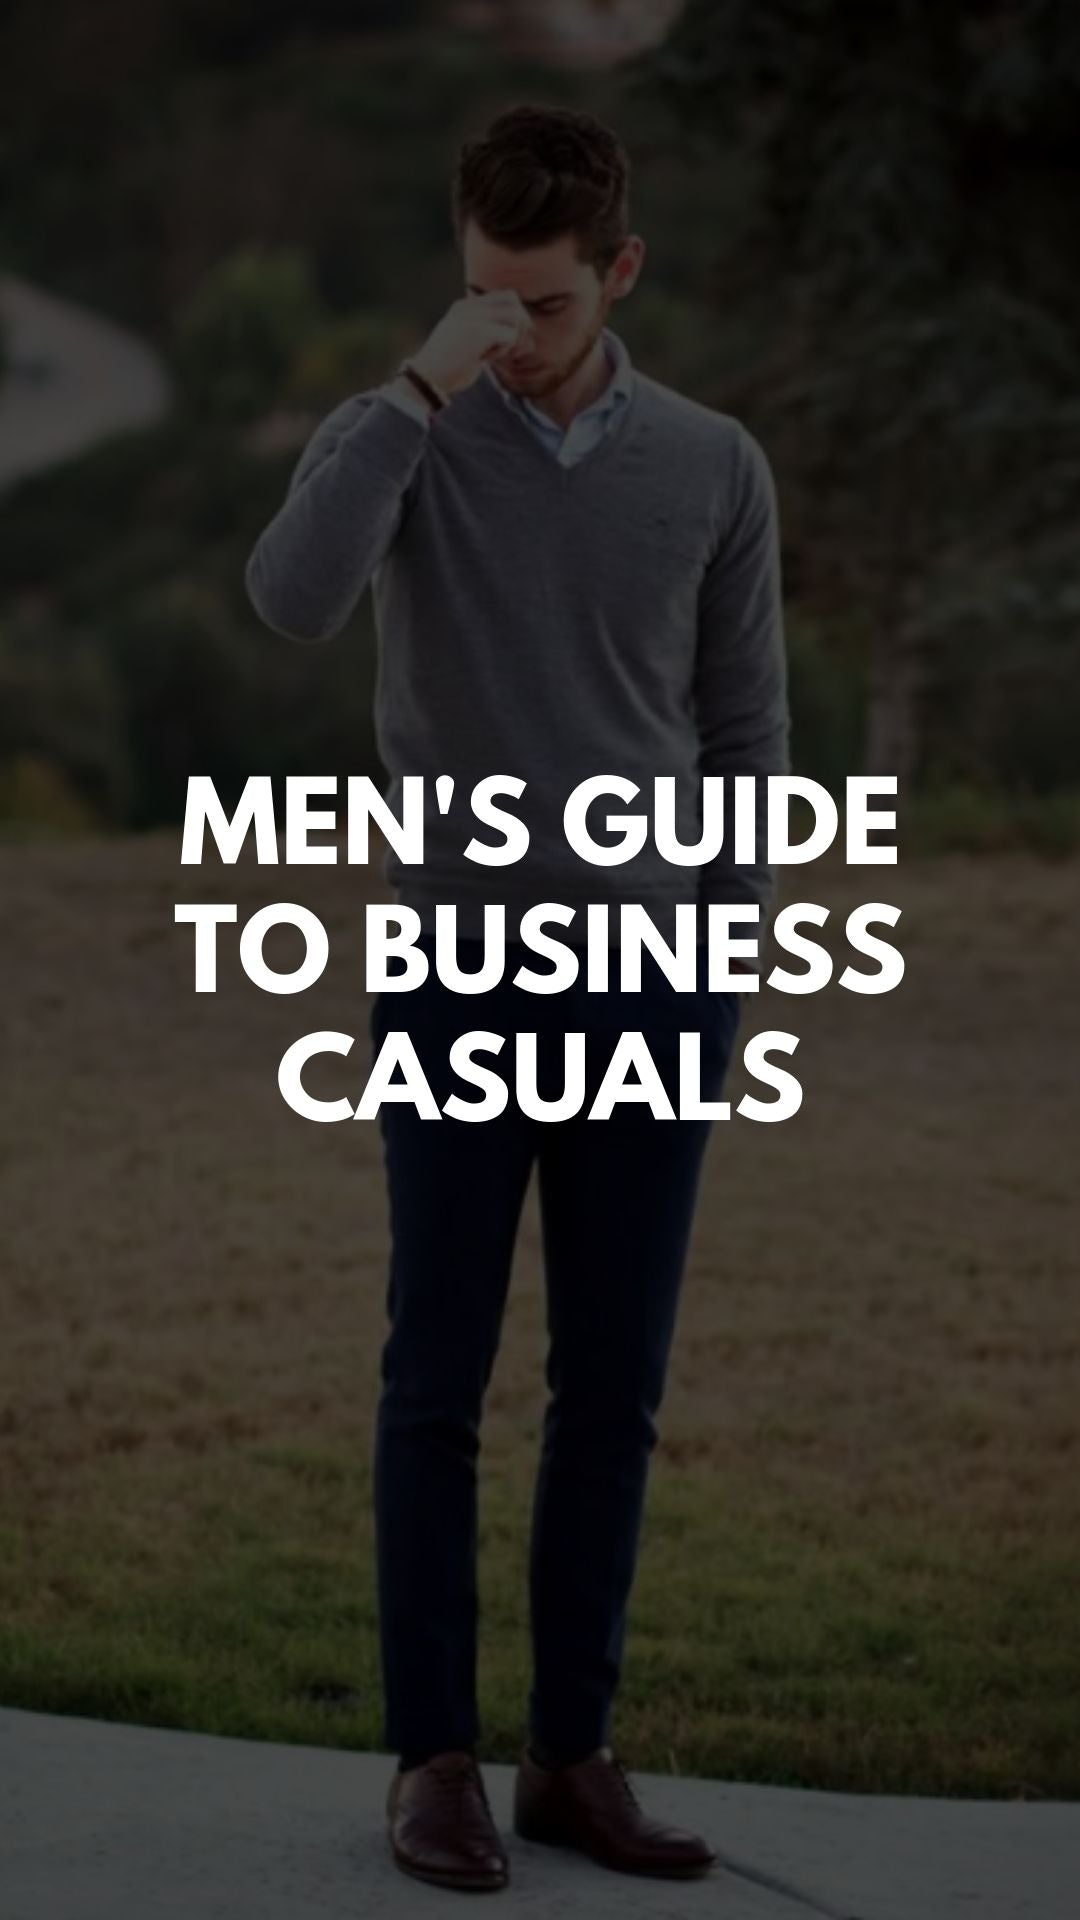 Men's Guide To Business Casuals